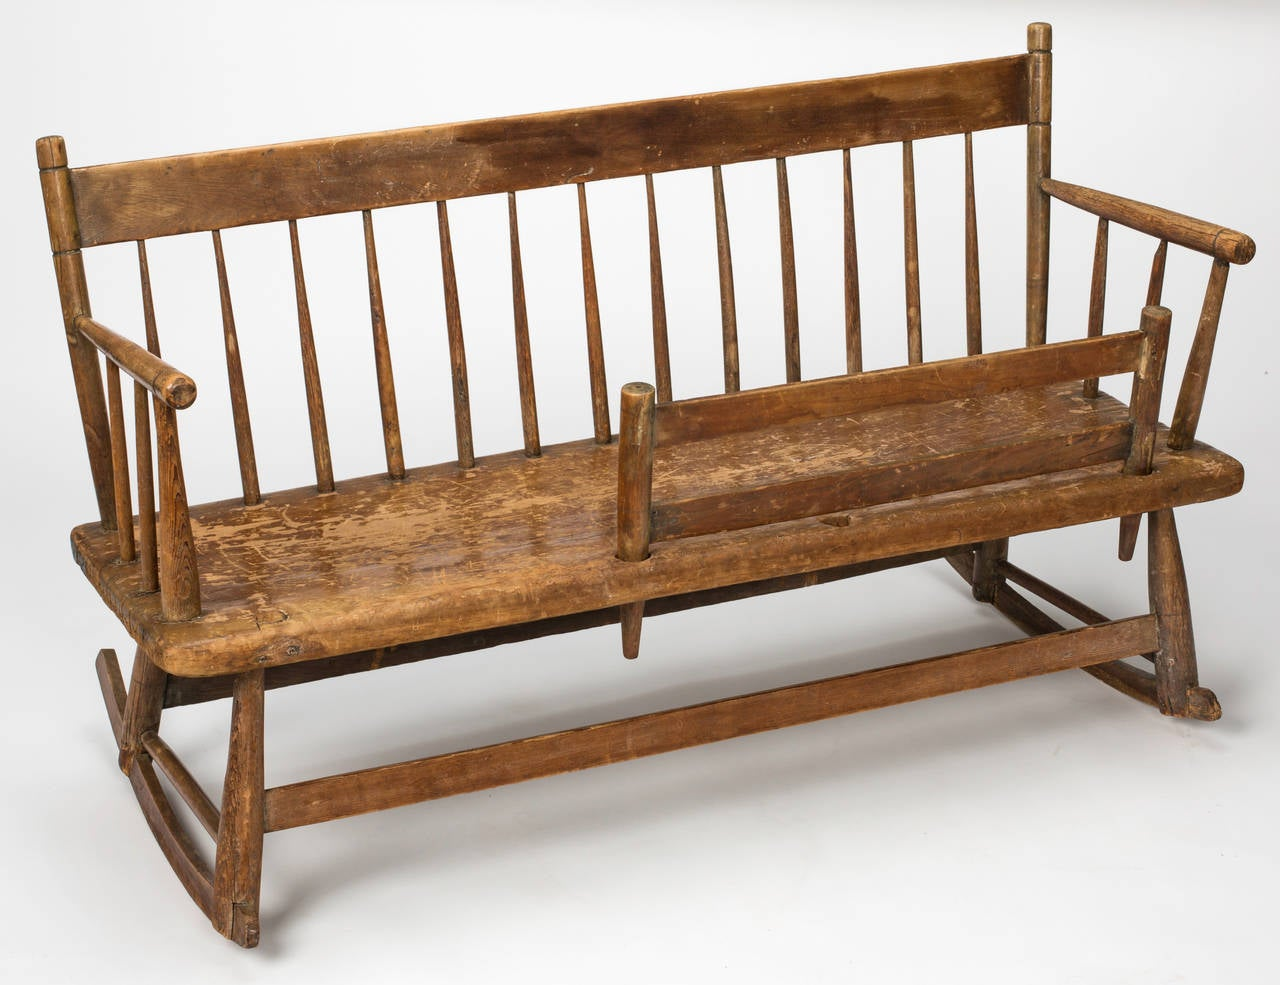 rocking chair cradle pontoon captains early american mammy 39s rocker bench circa 1830s at 1stdibs